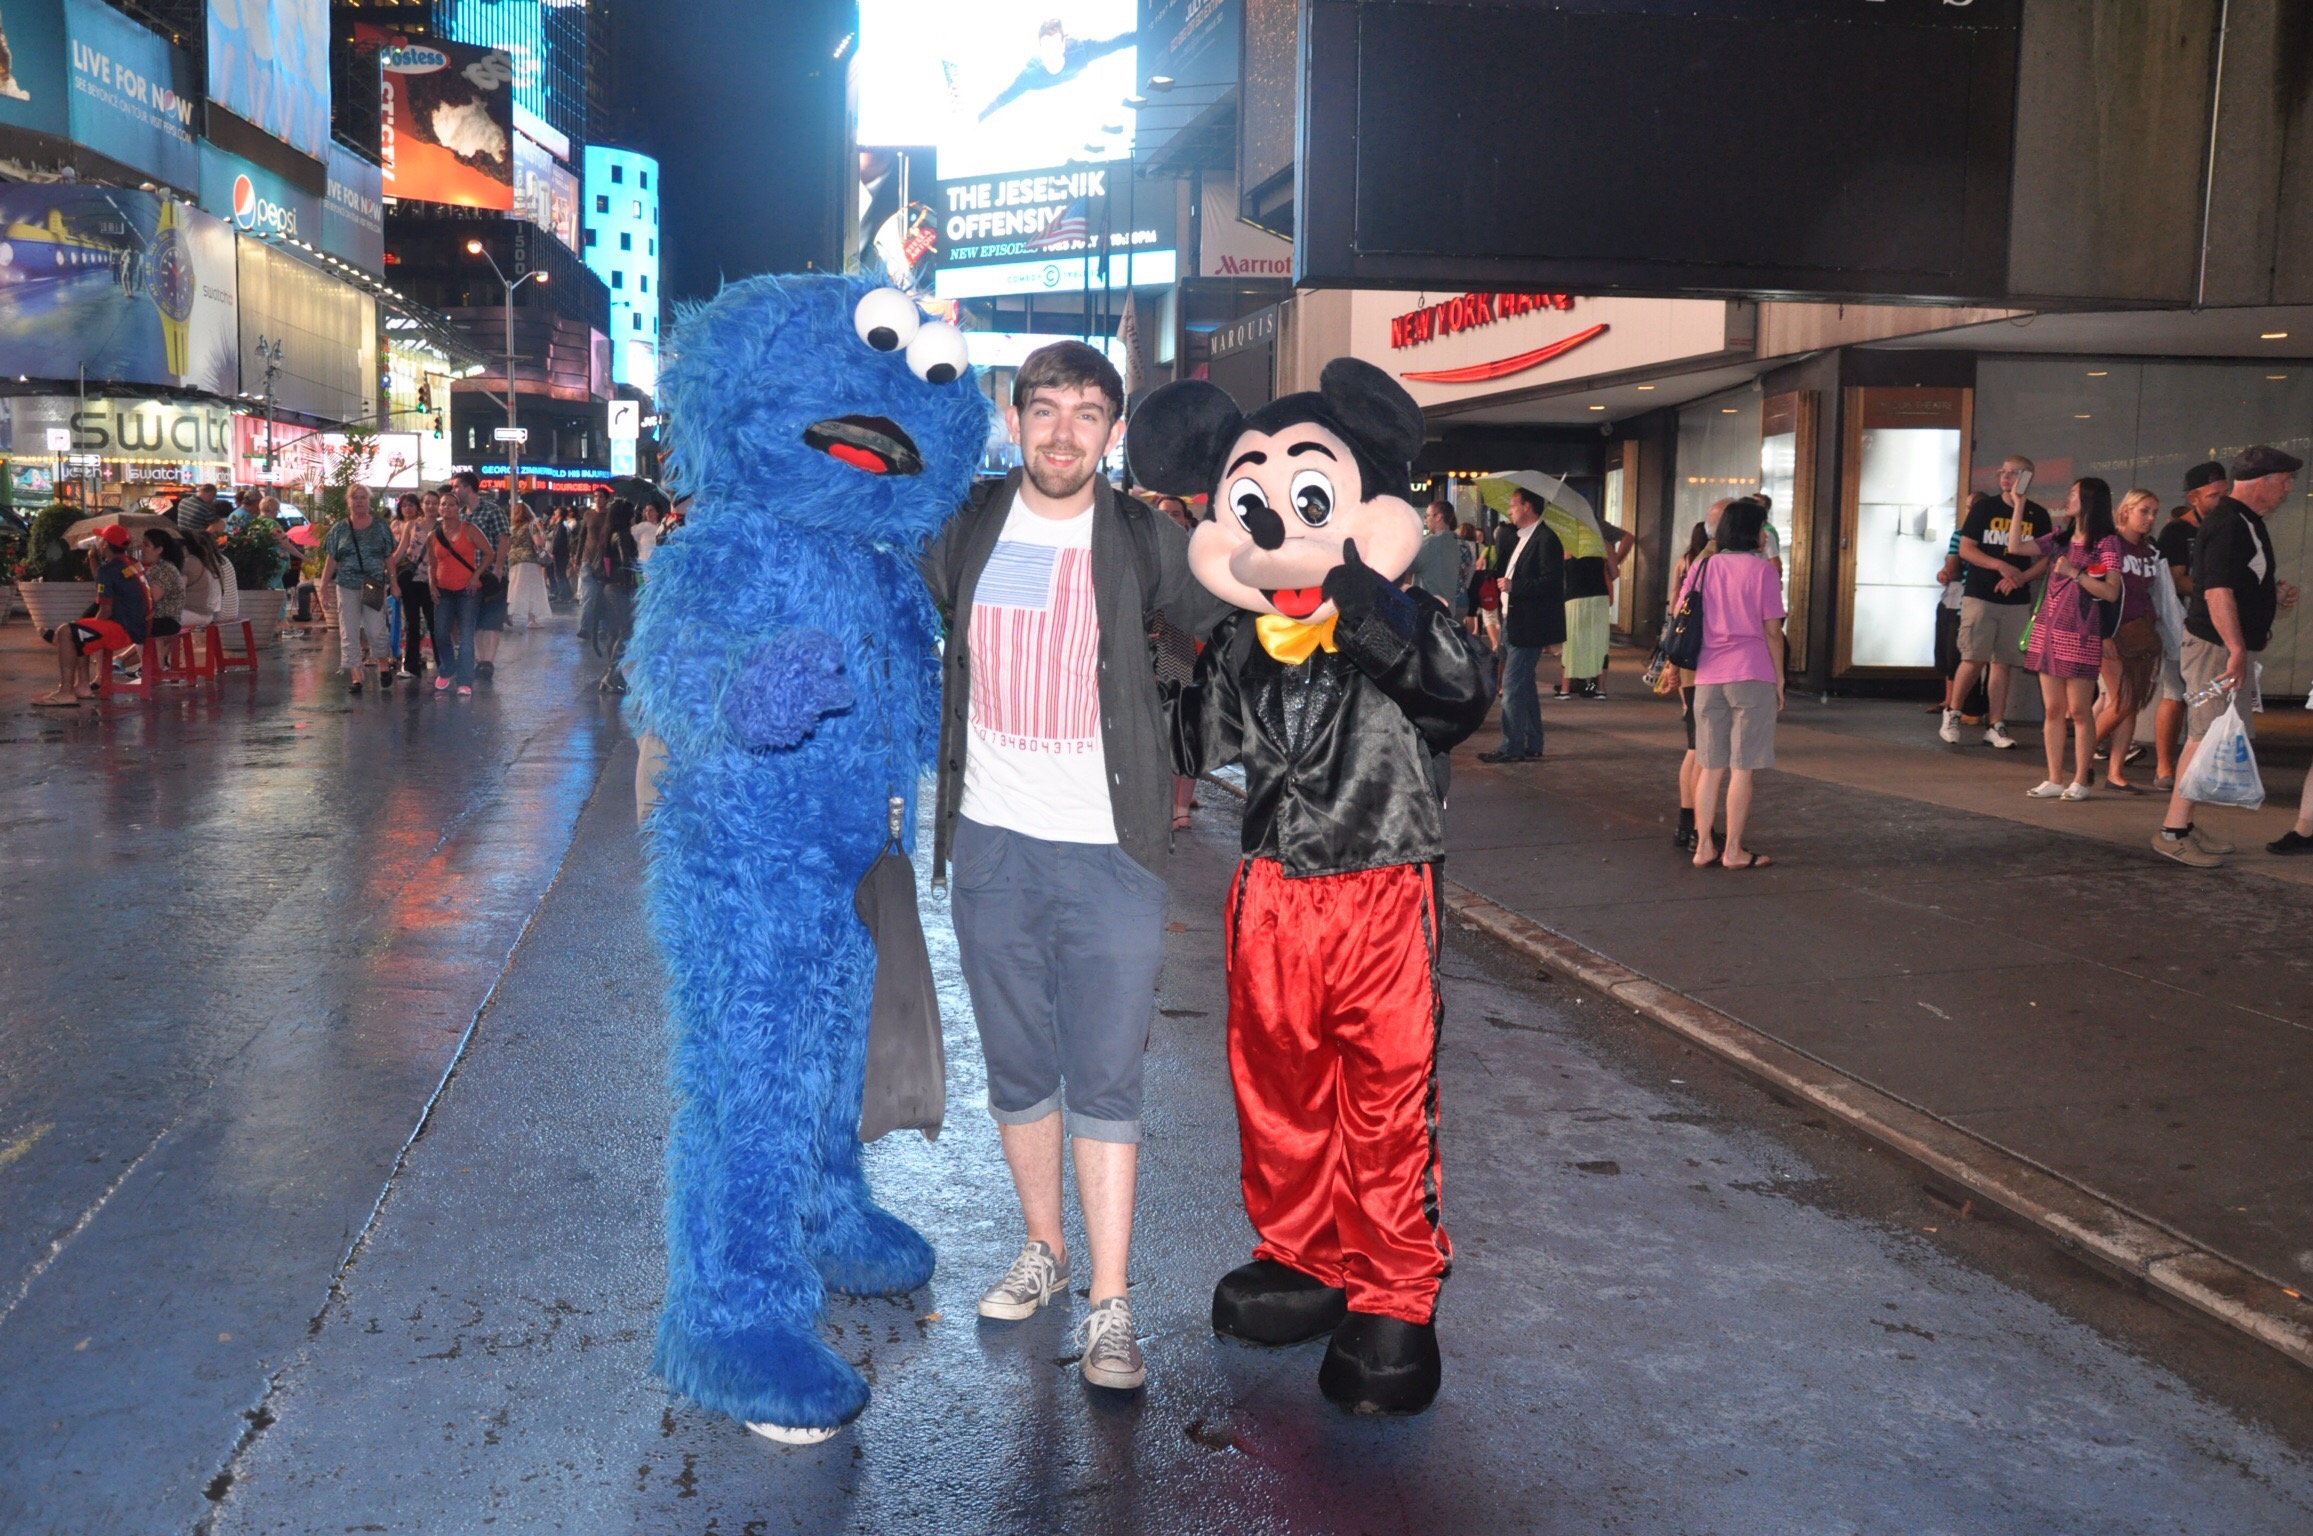 A very young Steven with Cookie Monster and Micky. We didn't have change as we'd just arrived but they were happy to take a rather large note... Each! Lesson learned.